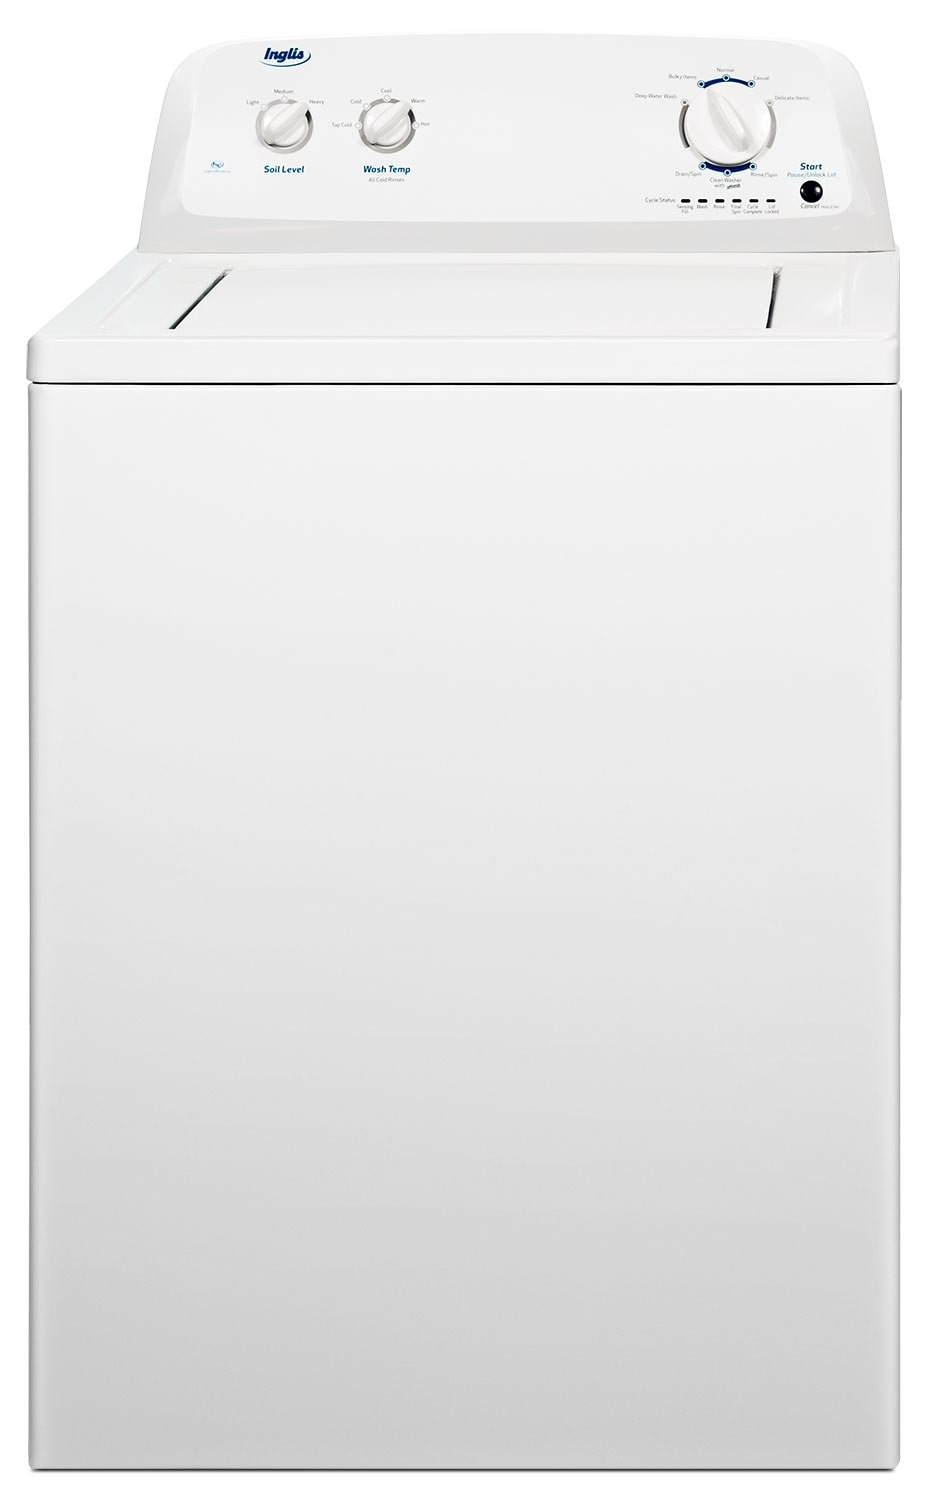 Inglis 4.1 Cu. Ft. Top-Load Washer - White